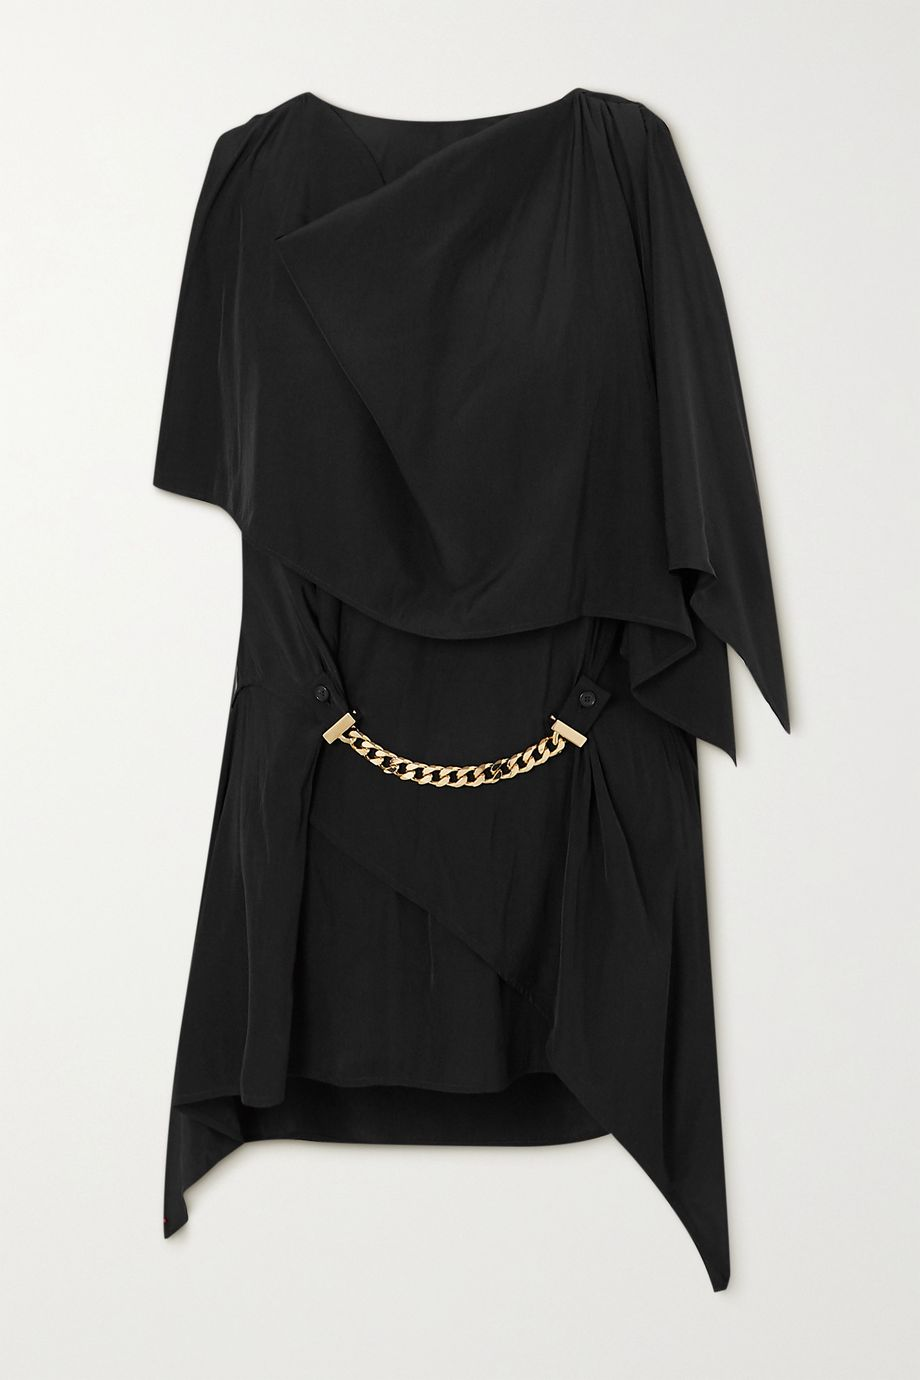 JW Anderson One-sleeve chain-embellished crepe top